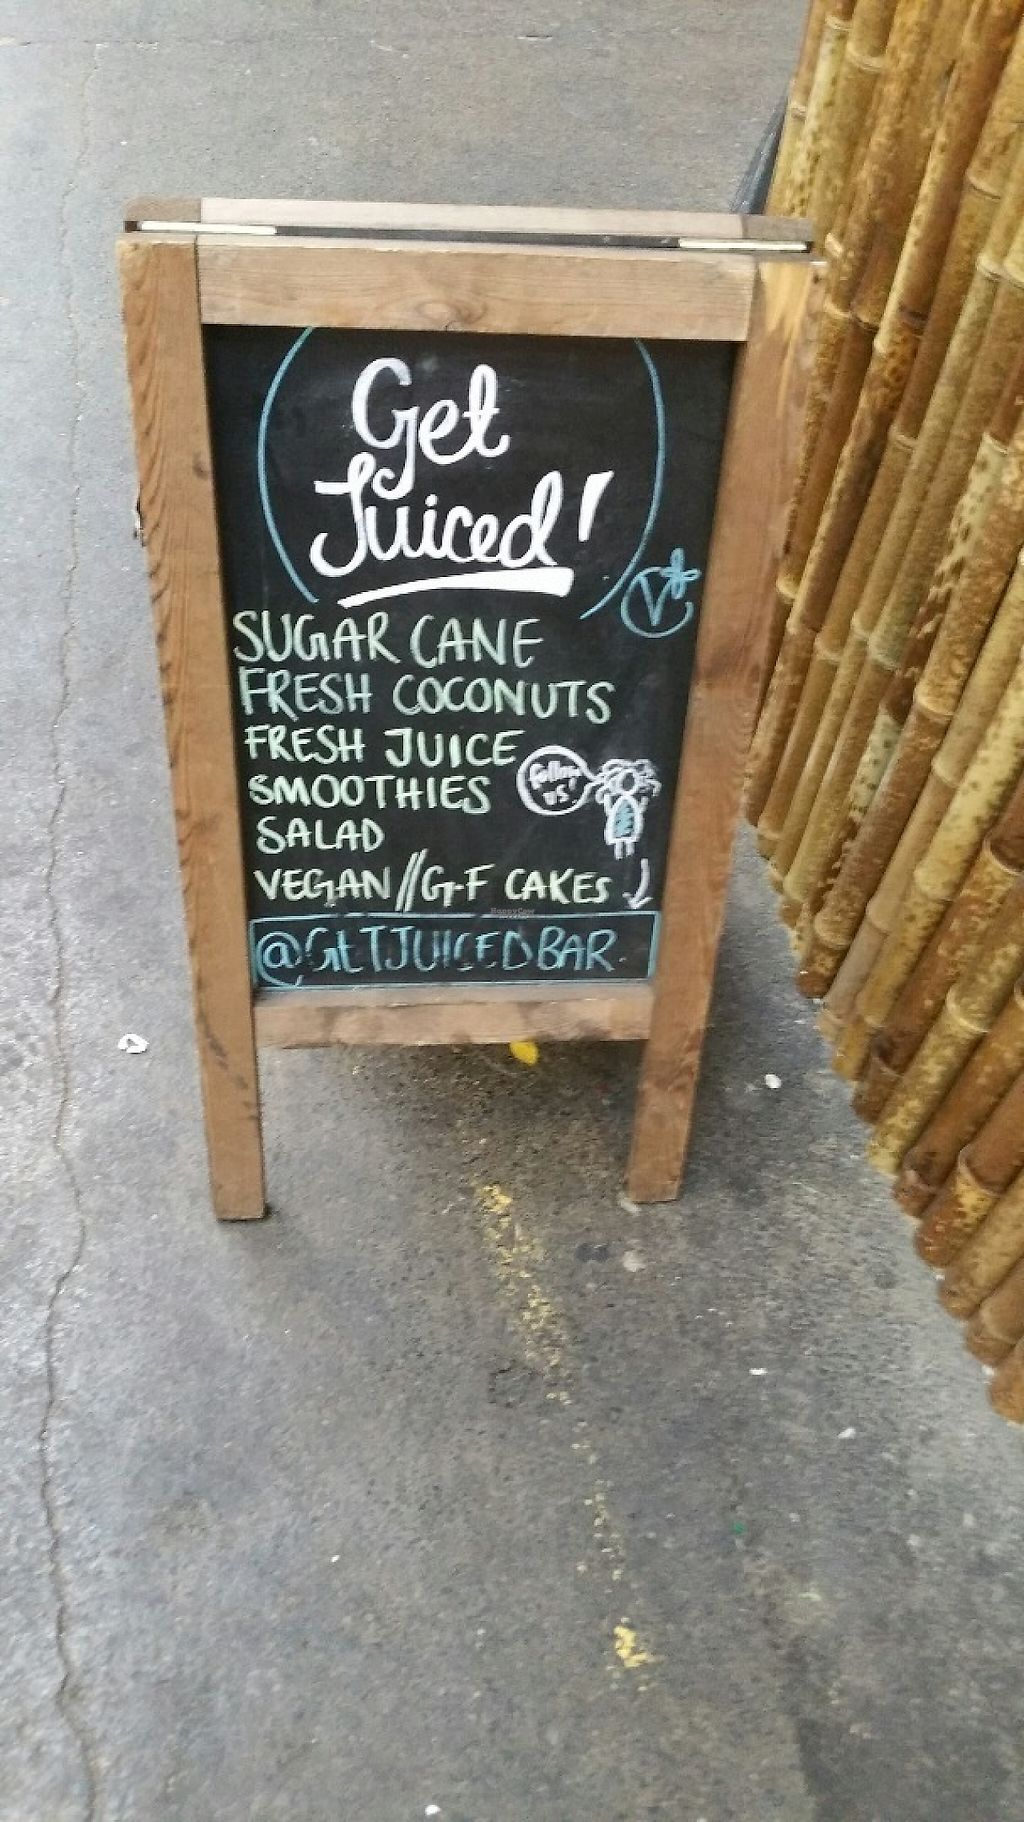 """Photo of Get Juiced  by <a href=""""/members/profile/jollypig"""">jollypig</a> <br/>An informative sign about juices <br/> April 23, 2017  - <a href='/contact/abuse/image/82486/251543'>Report</a>"""